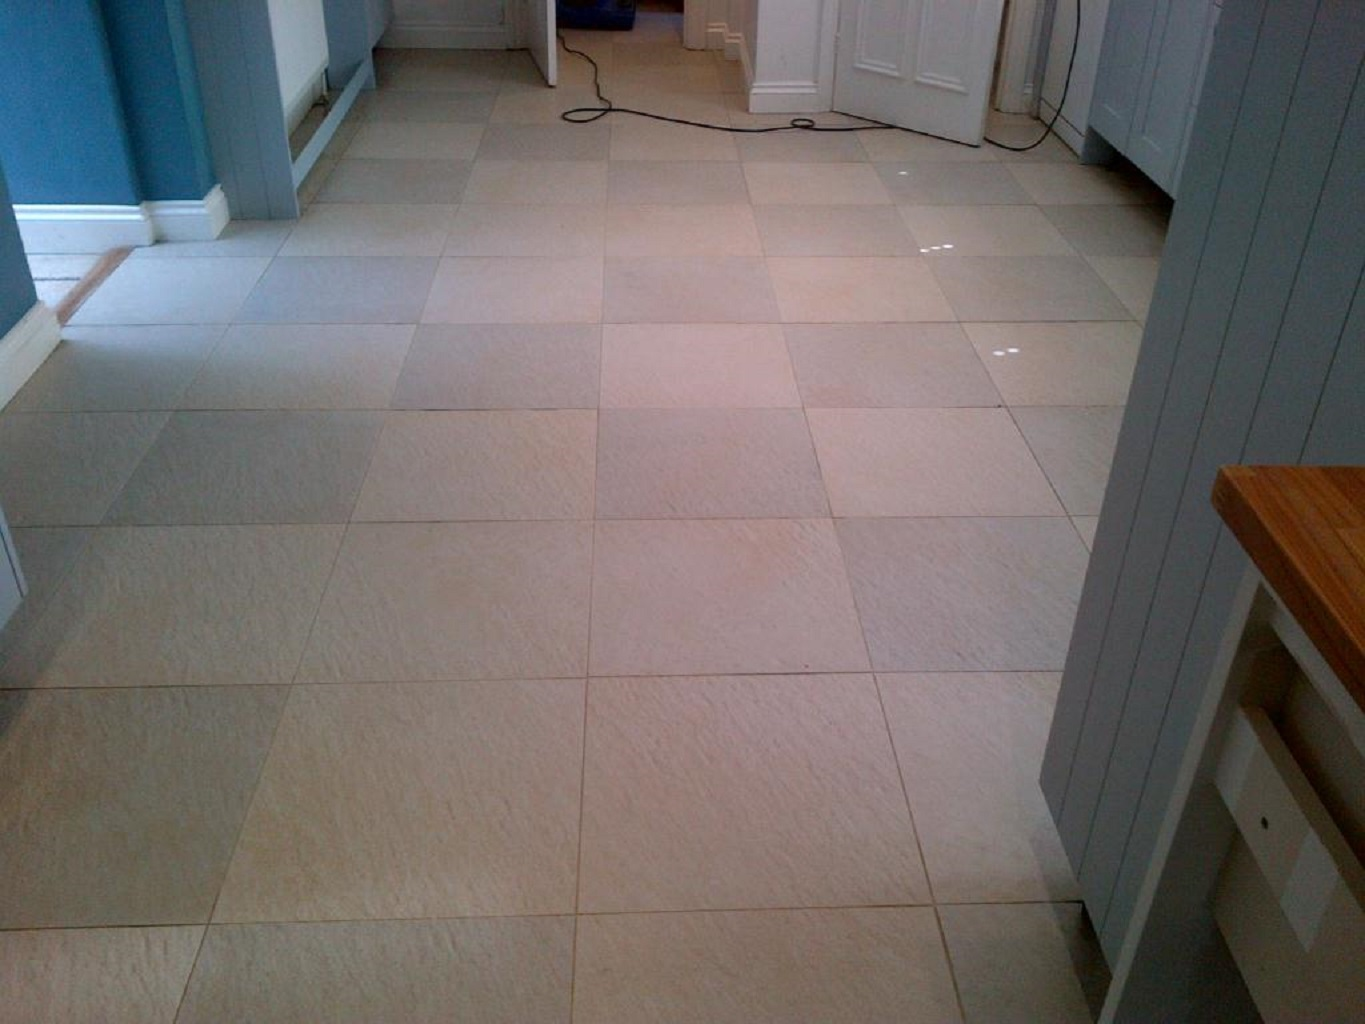 Textured Ceramic Tile Cleaning